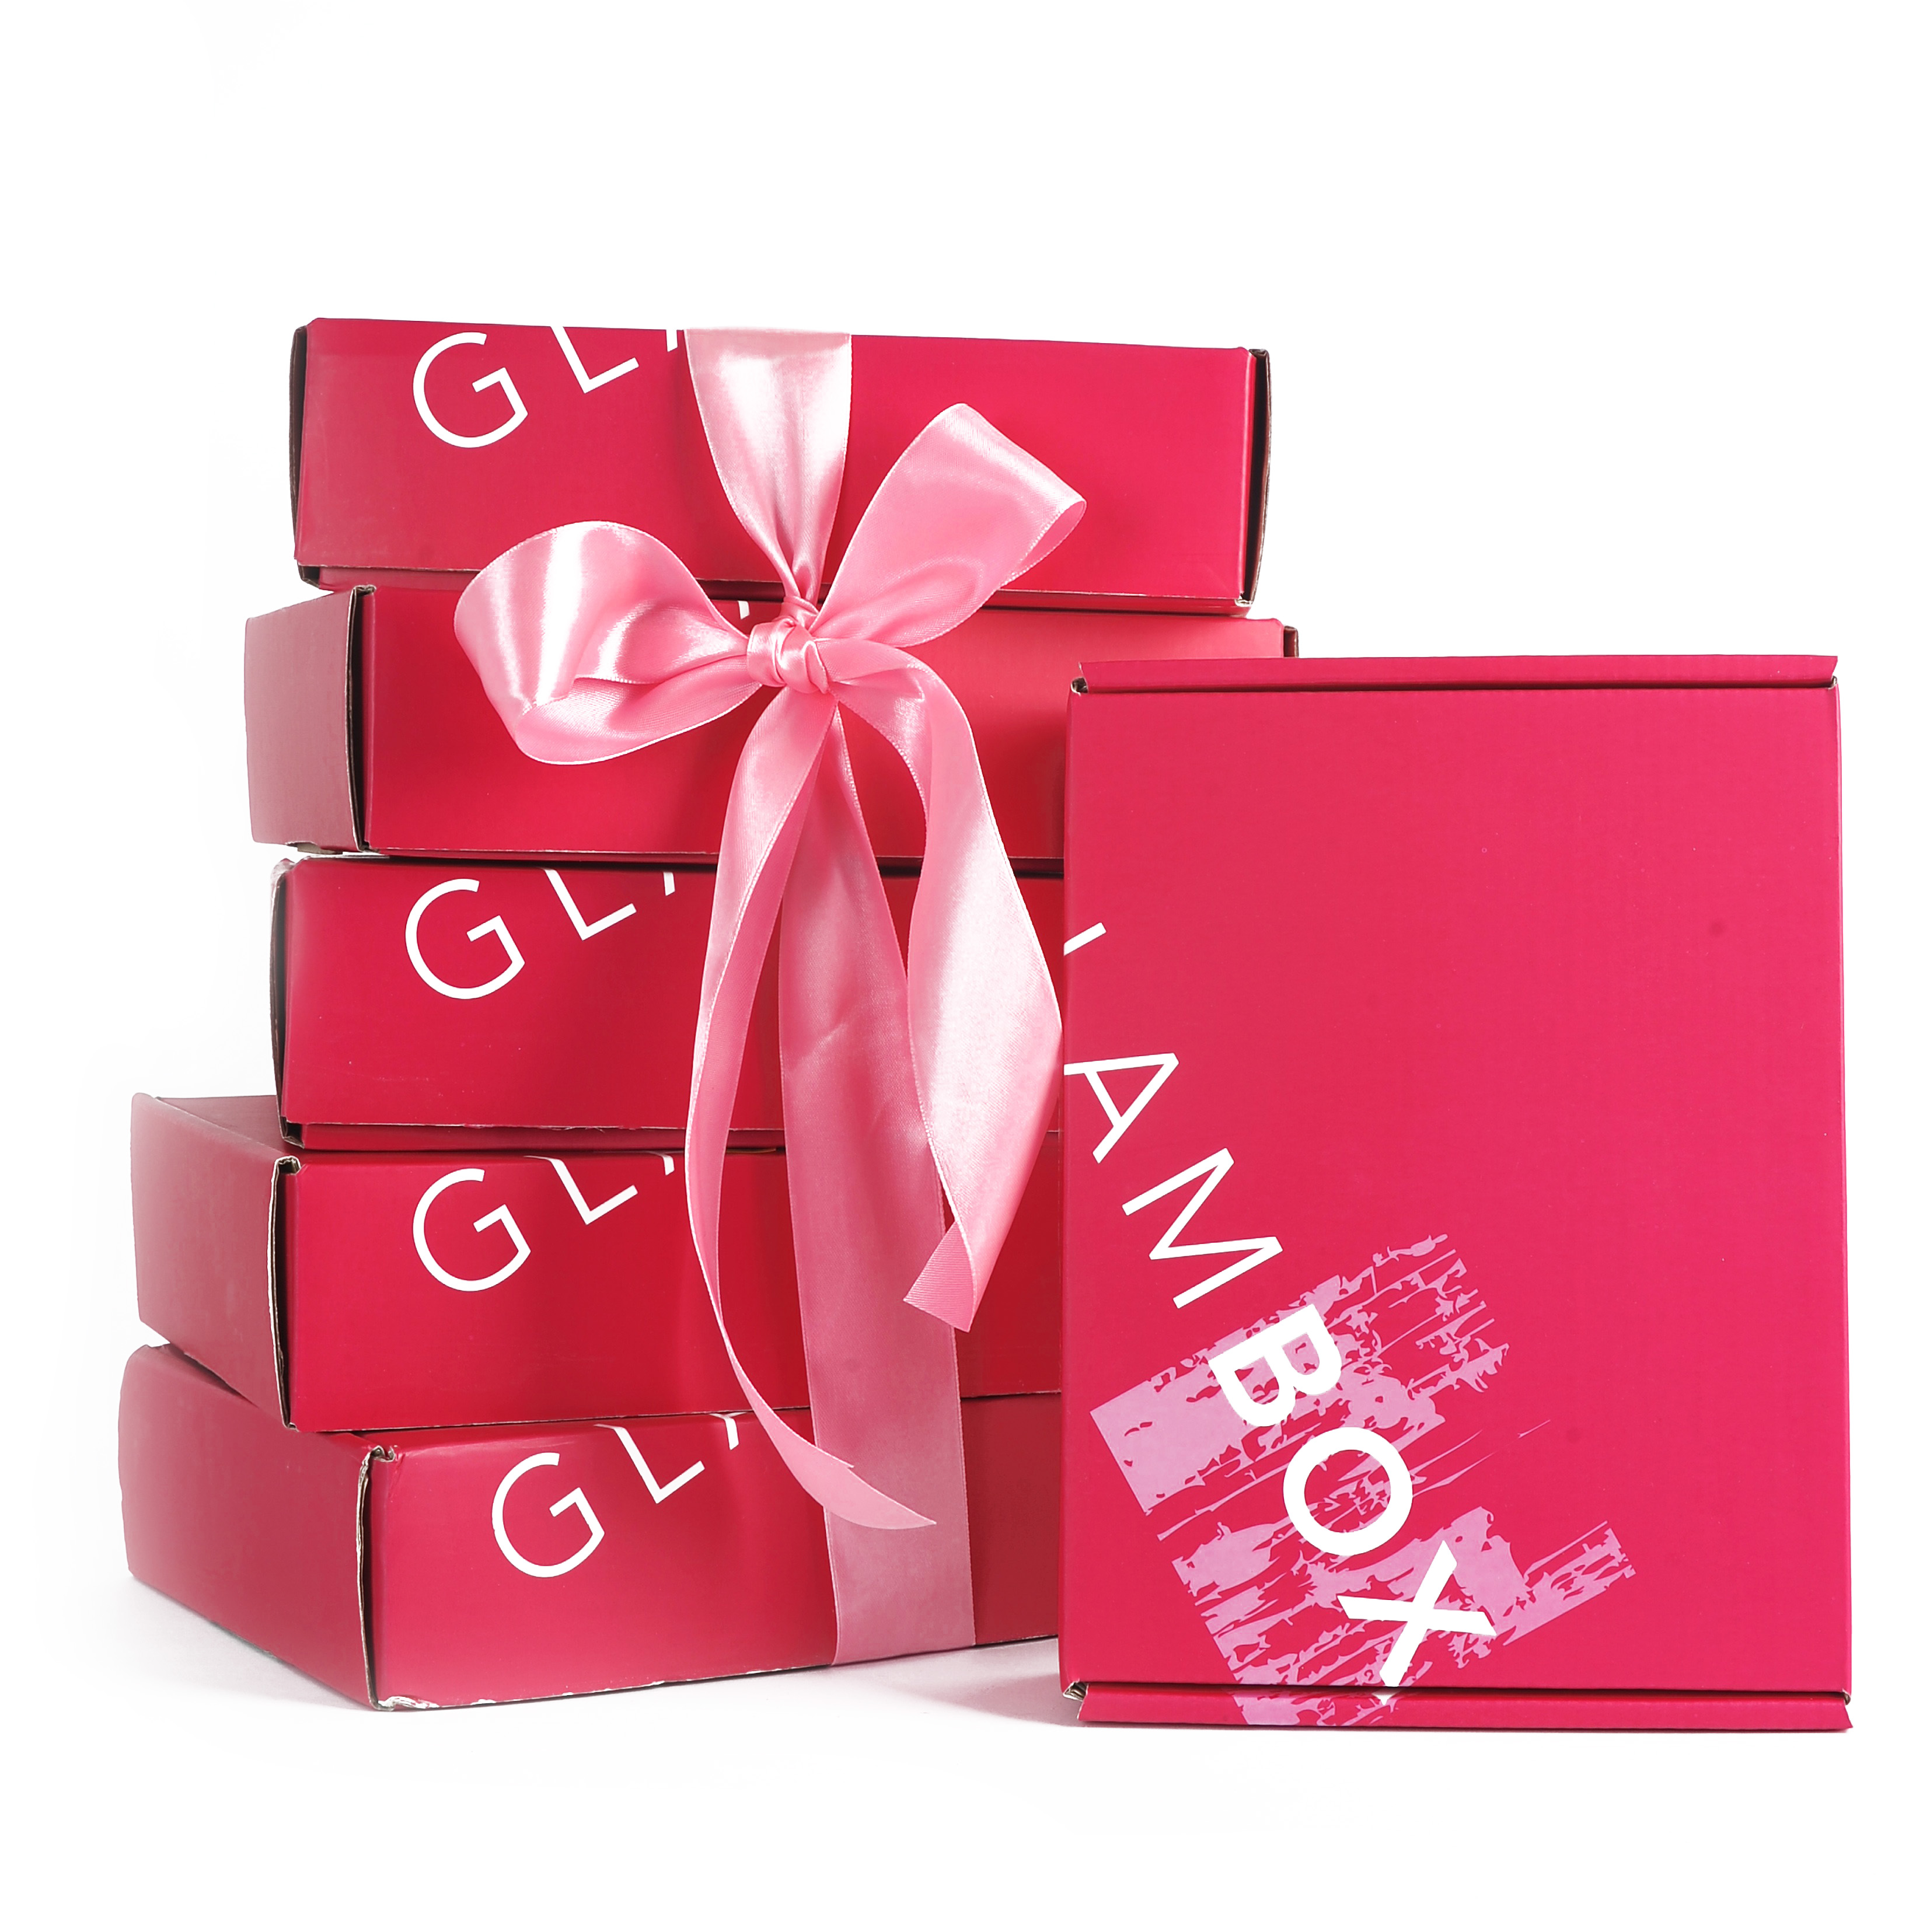 Glambox event - Recycle and save the planet with beauty! - nazninazeez